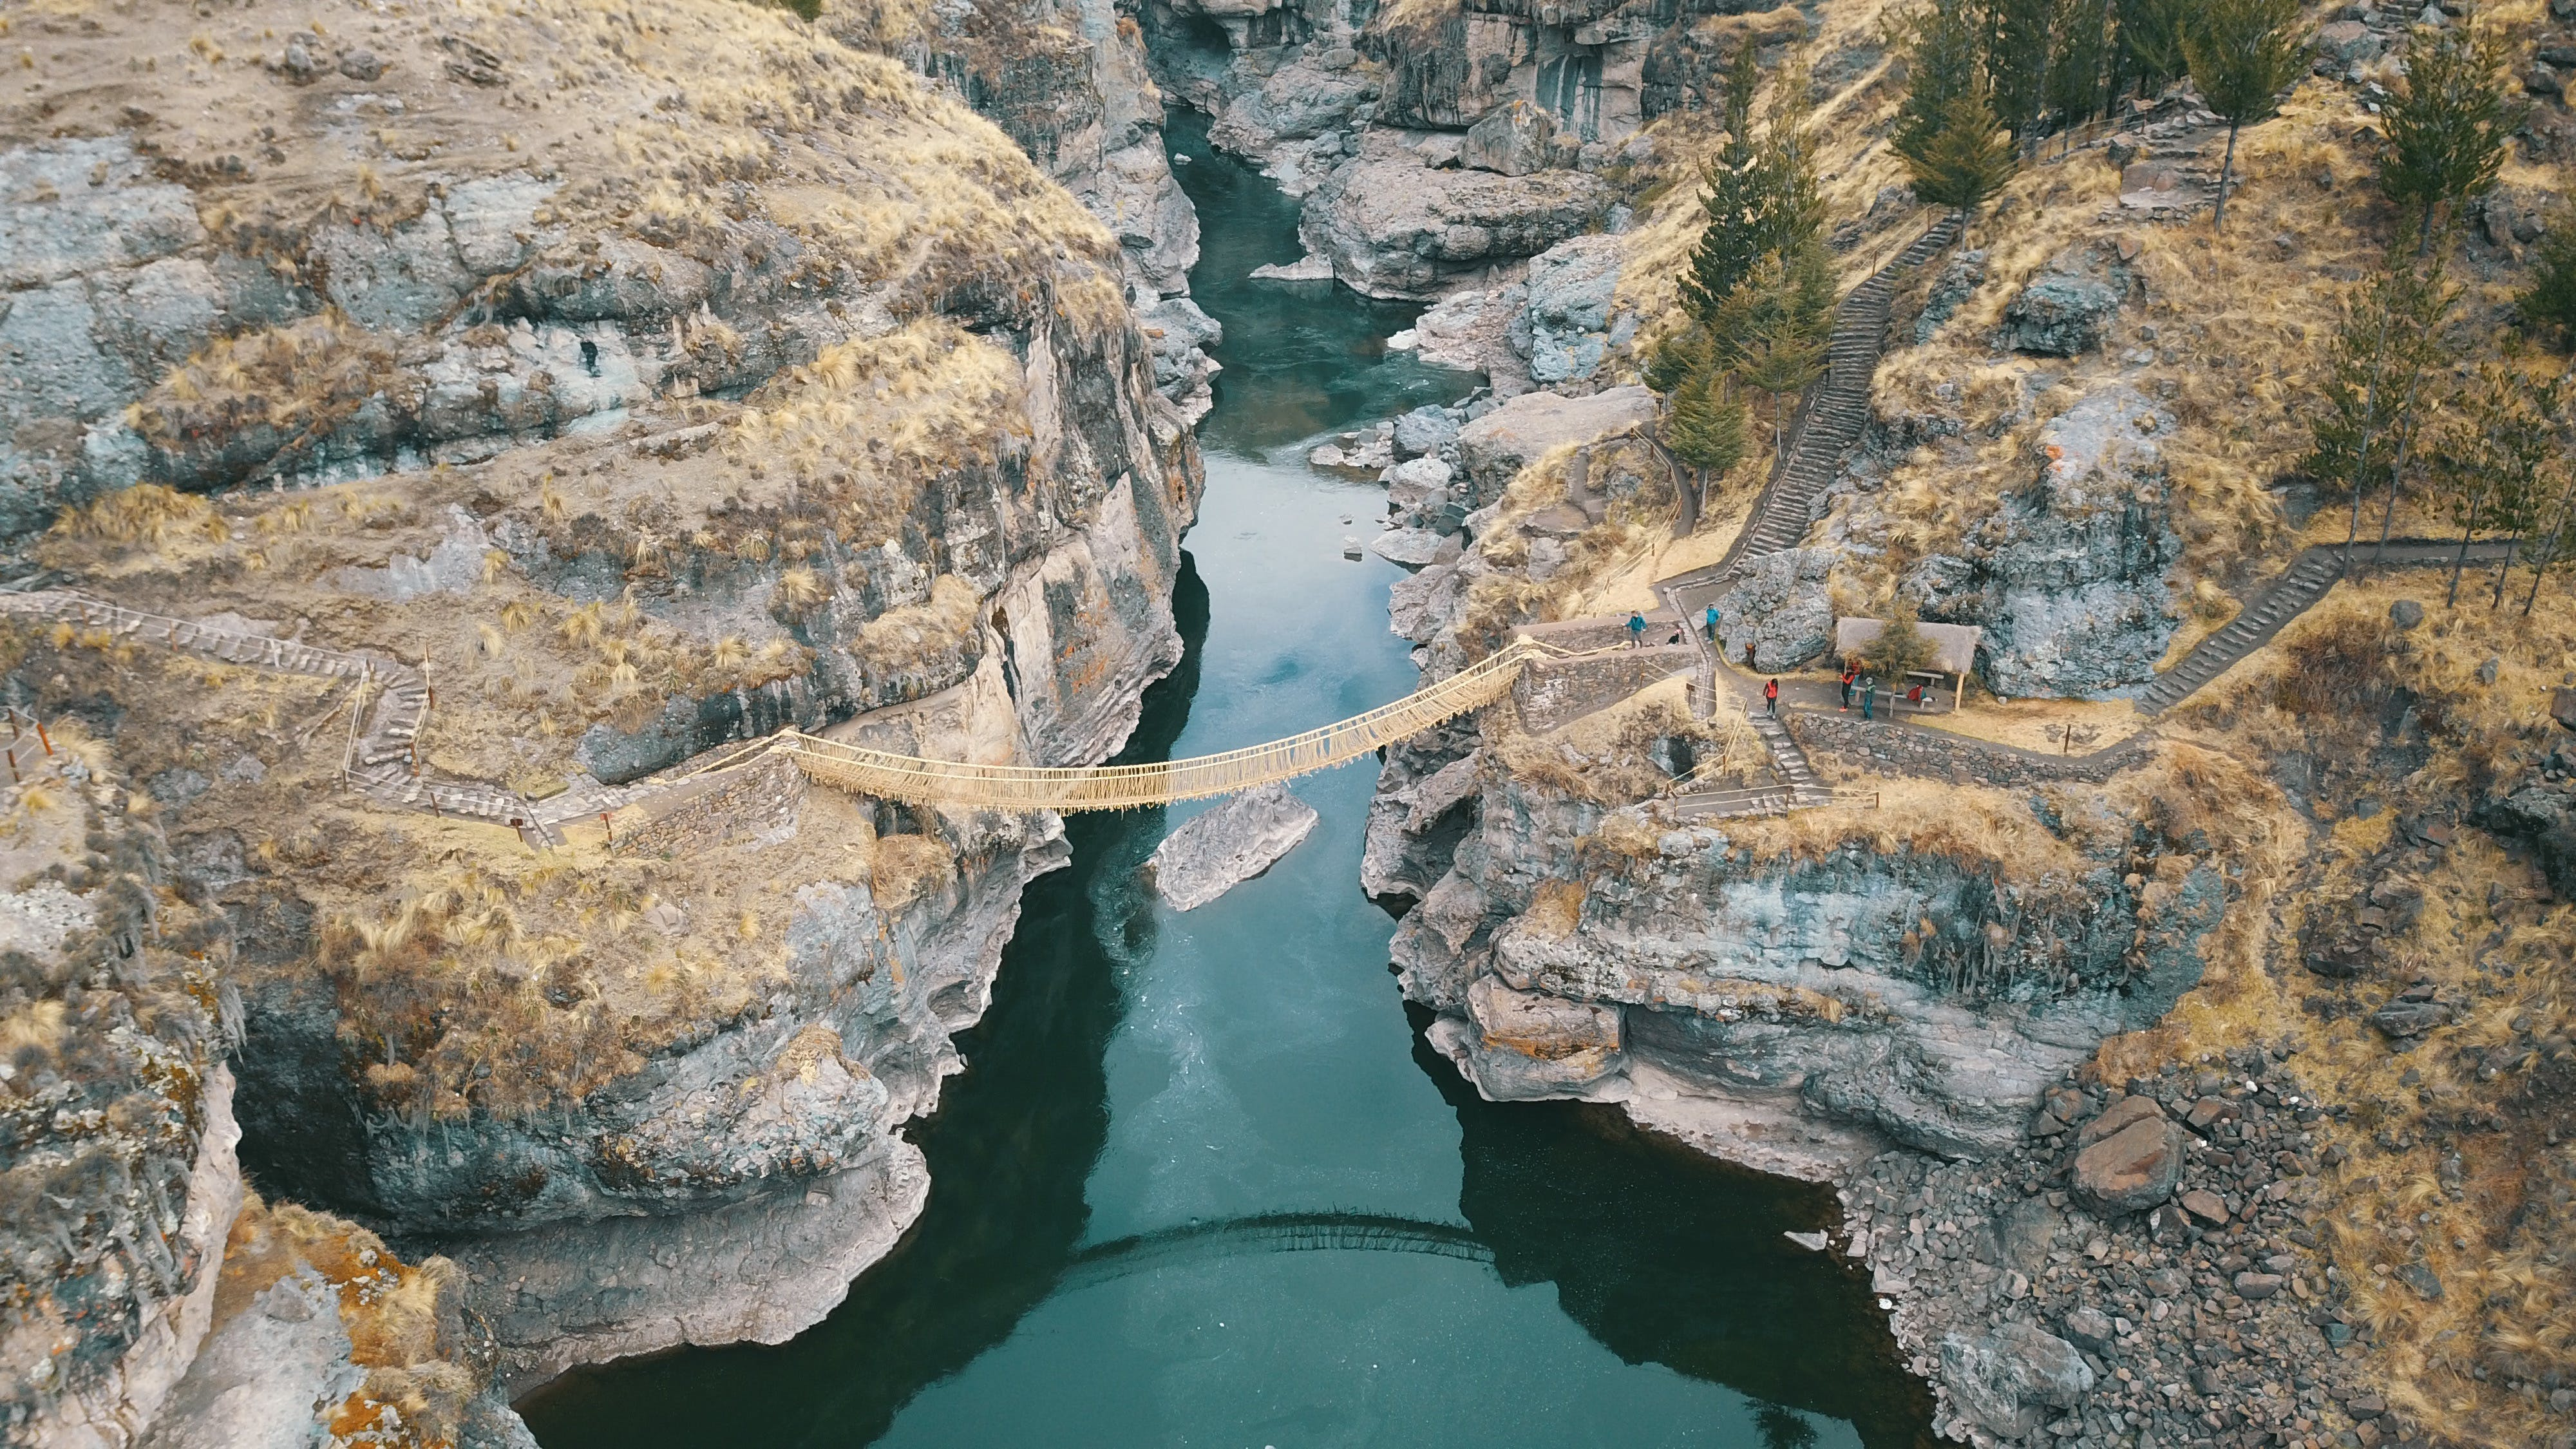 Aerial Photography of Brown Hanging Bridge Connecting Two Cliffs